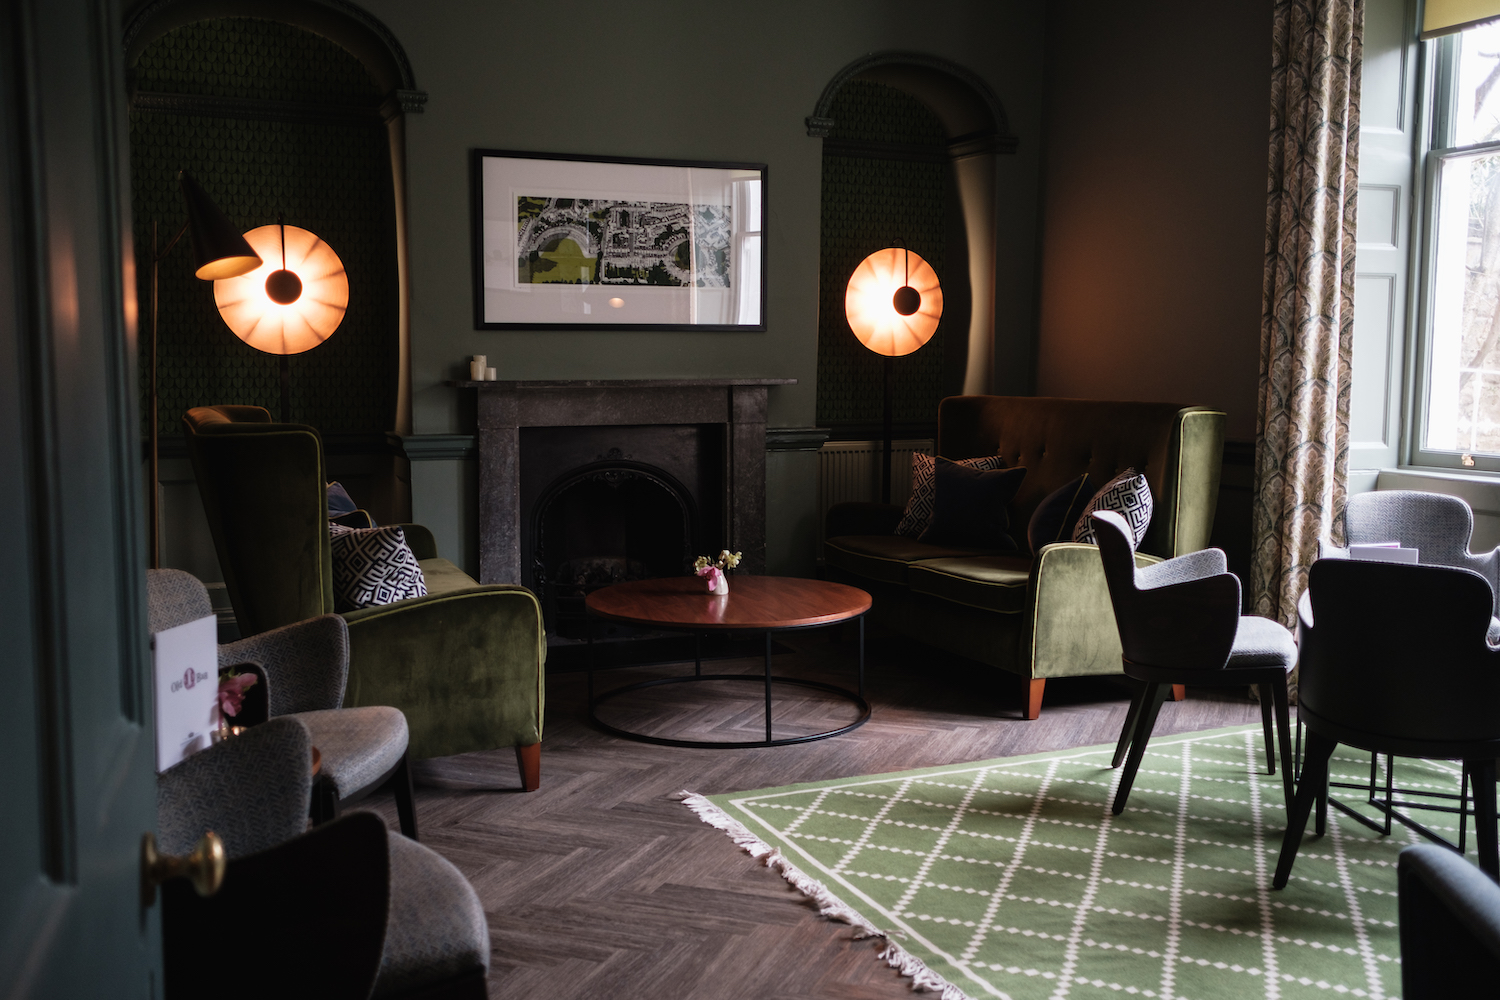 Queensbury Hotel, Bath, England by Ben Holbrook from DriftwoodJournals.com-13